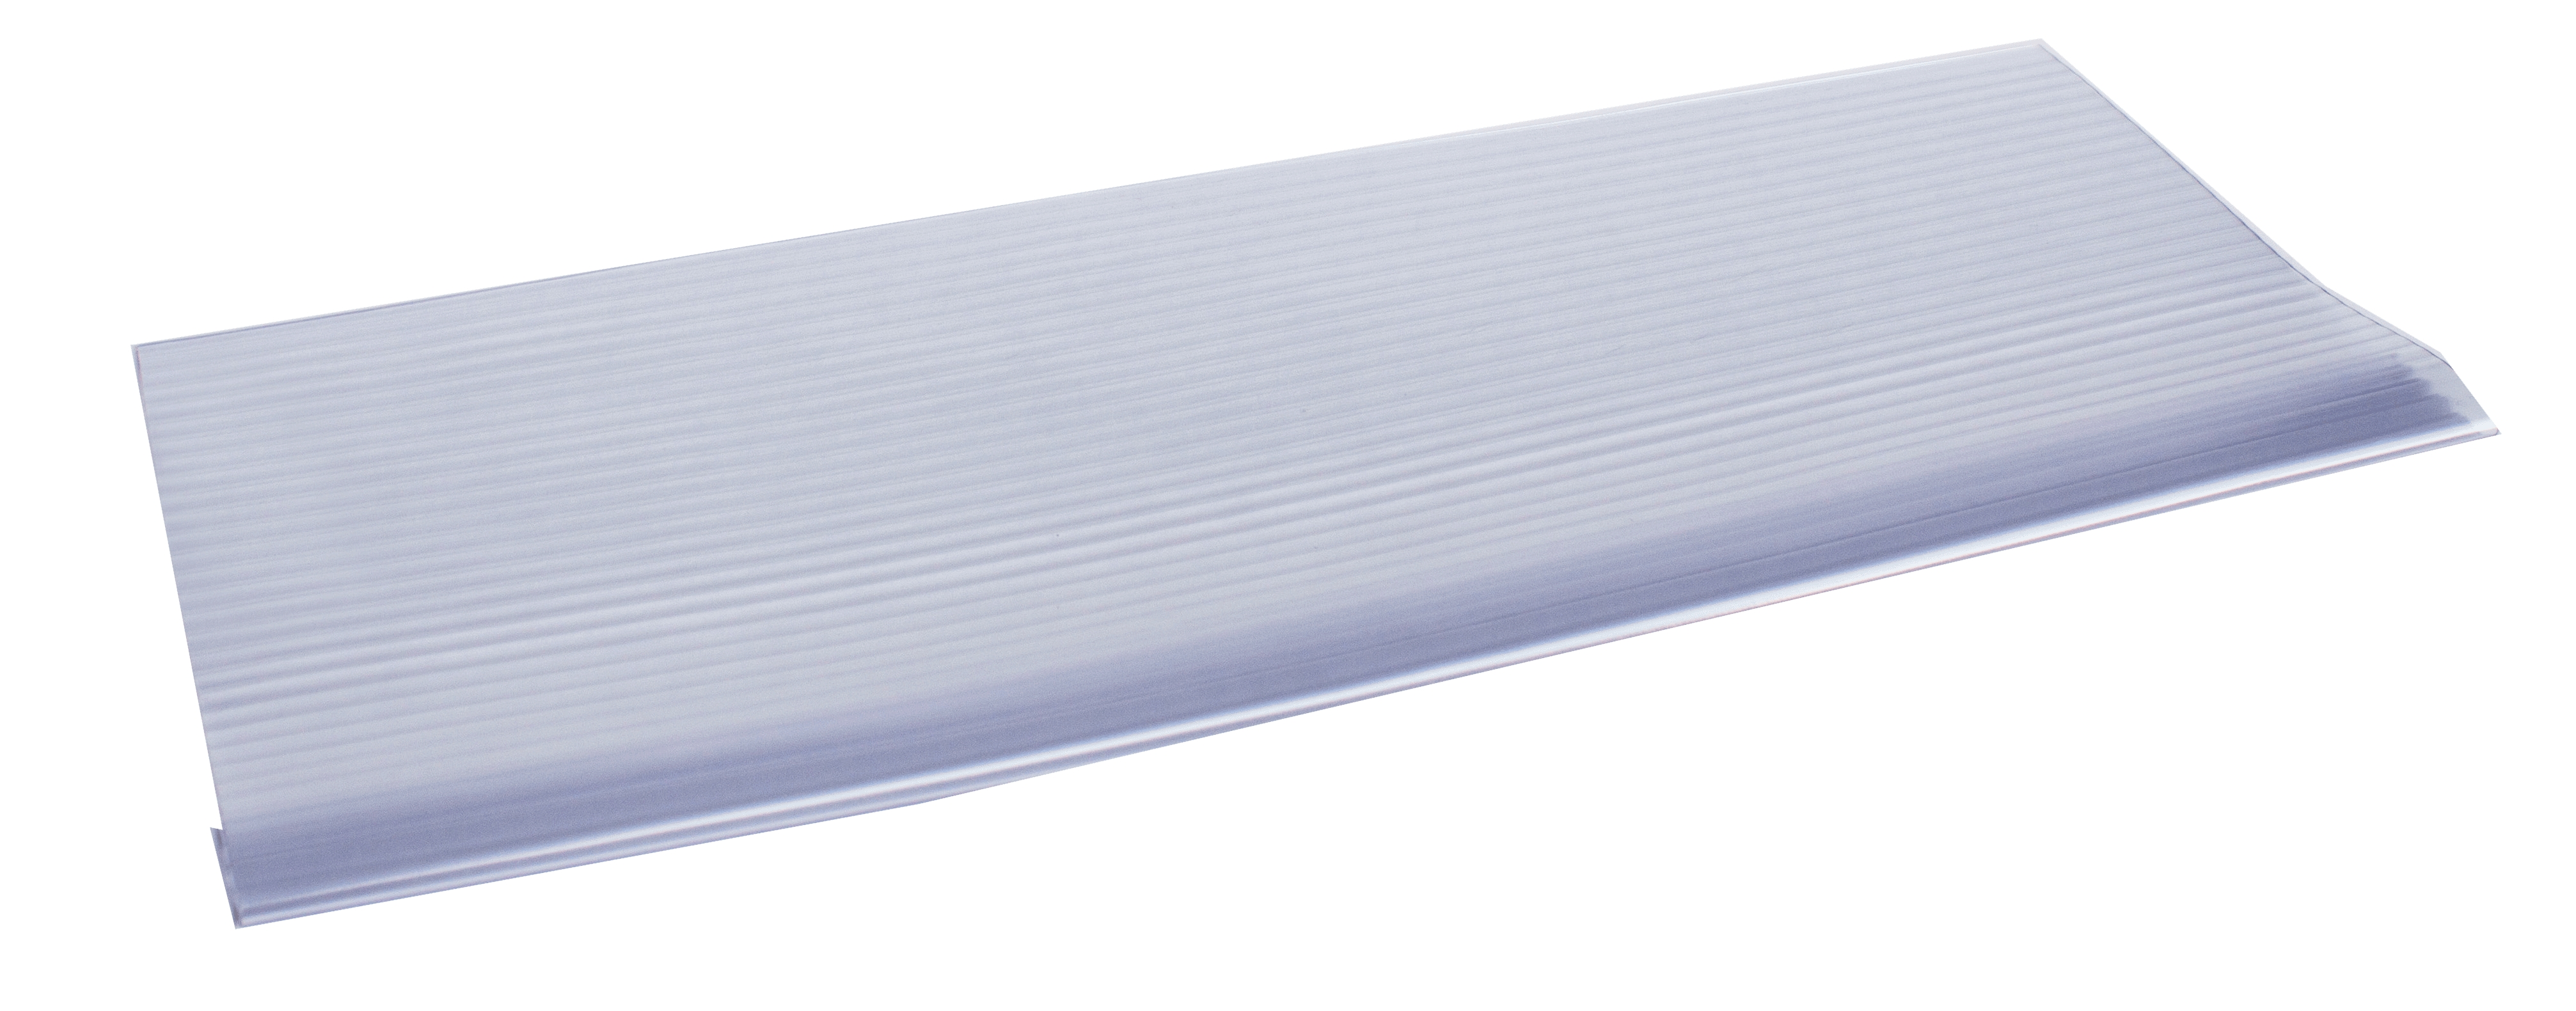 Wj Dennis Company Products Flooring Stair Treads Throughout Clear Stair Tread Carpet Protectors (#20 of 20)